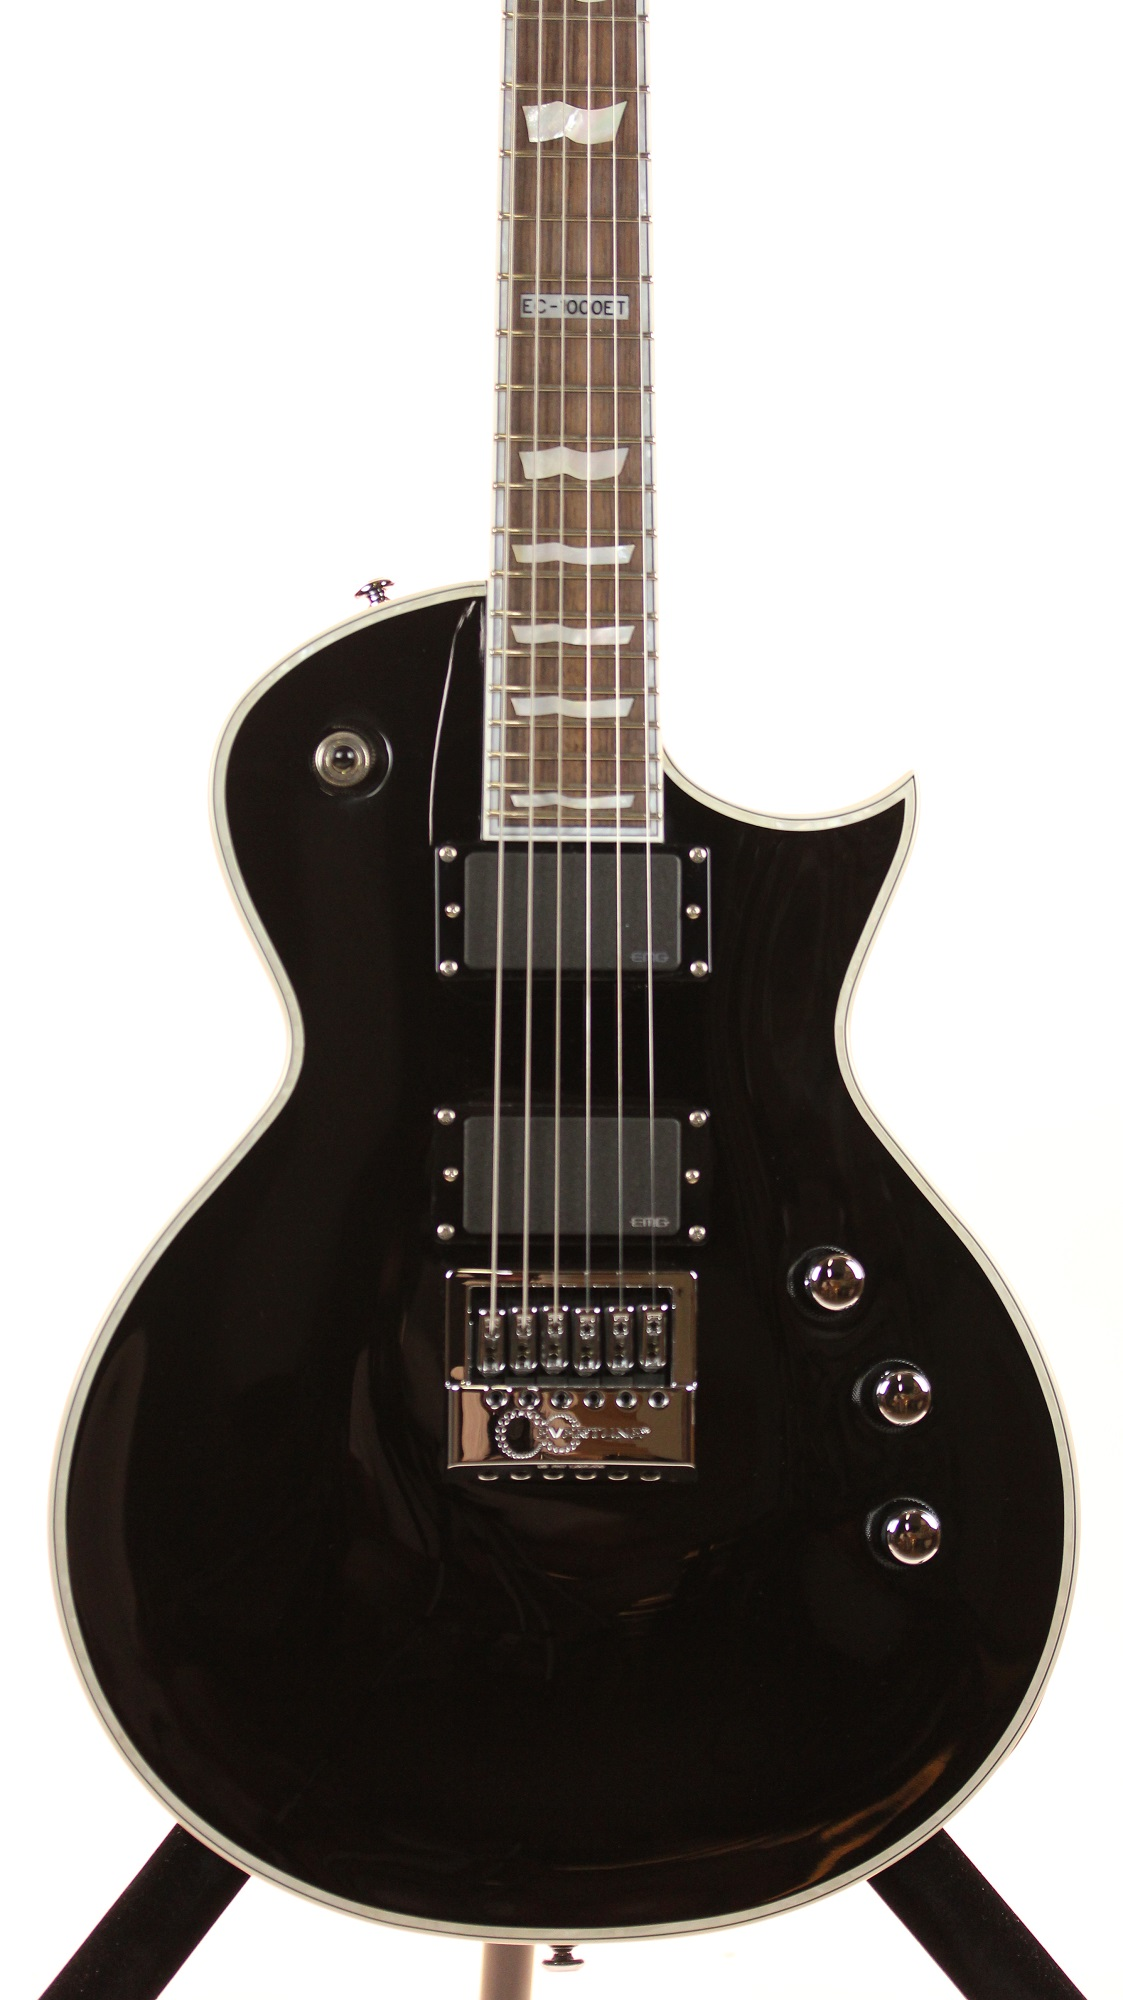 esp ltd ec 1000et black evertune bridge electric guitar 6. Black Bedroom Furniture Sets. Home Design Ideas